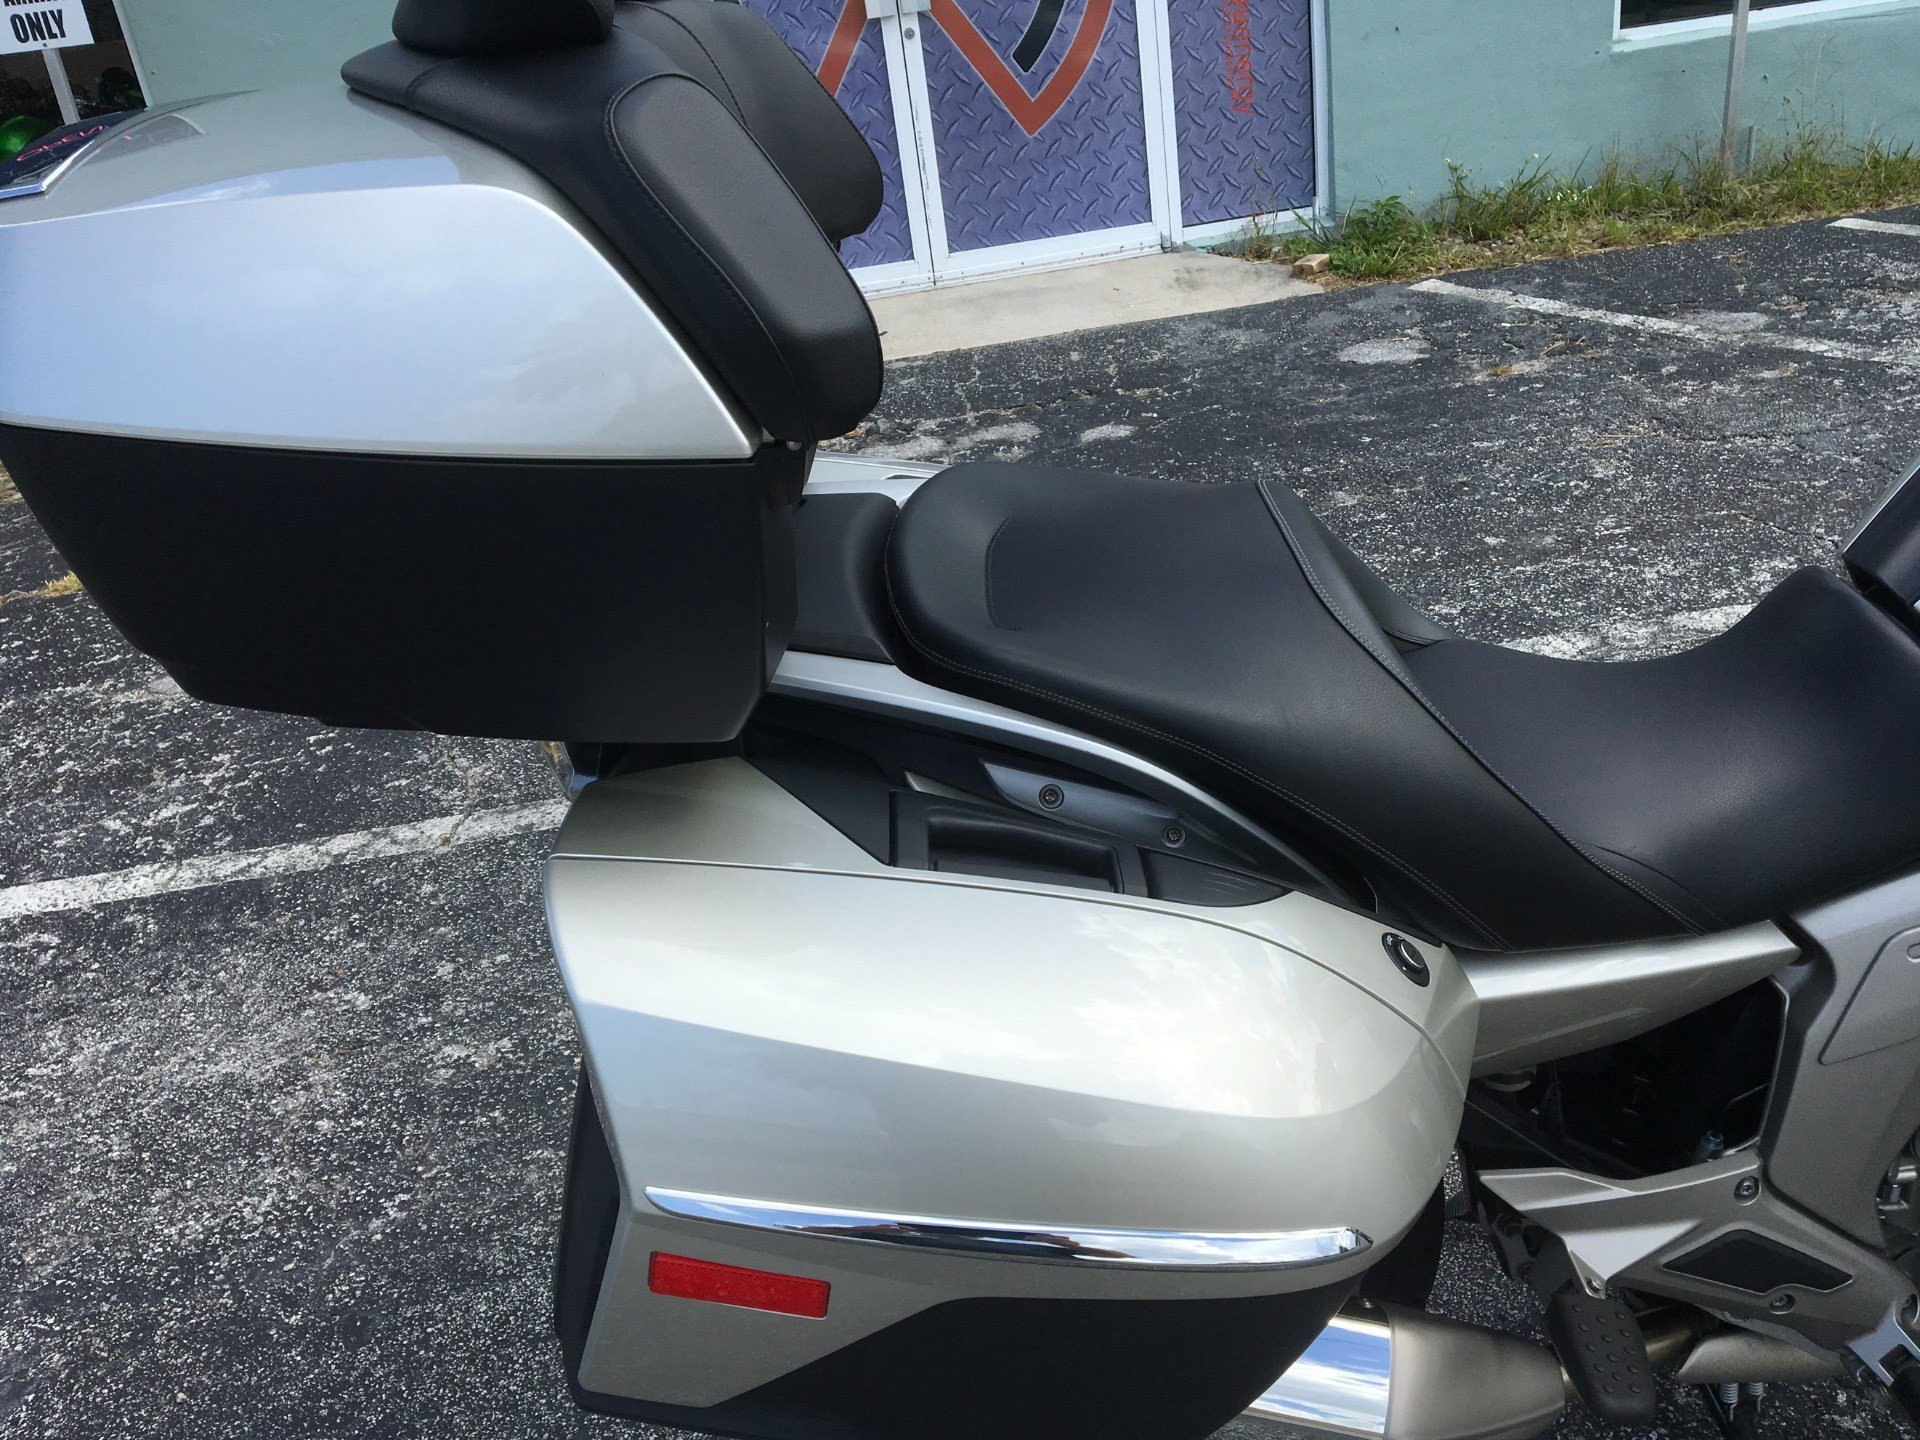 2012 BMW K1600 GTL in Cocoa, Florida - Photo 23